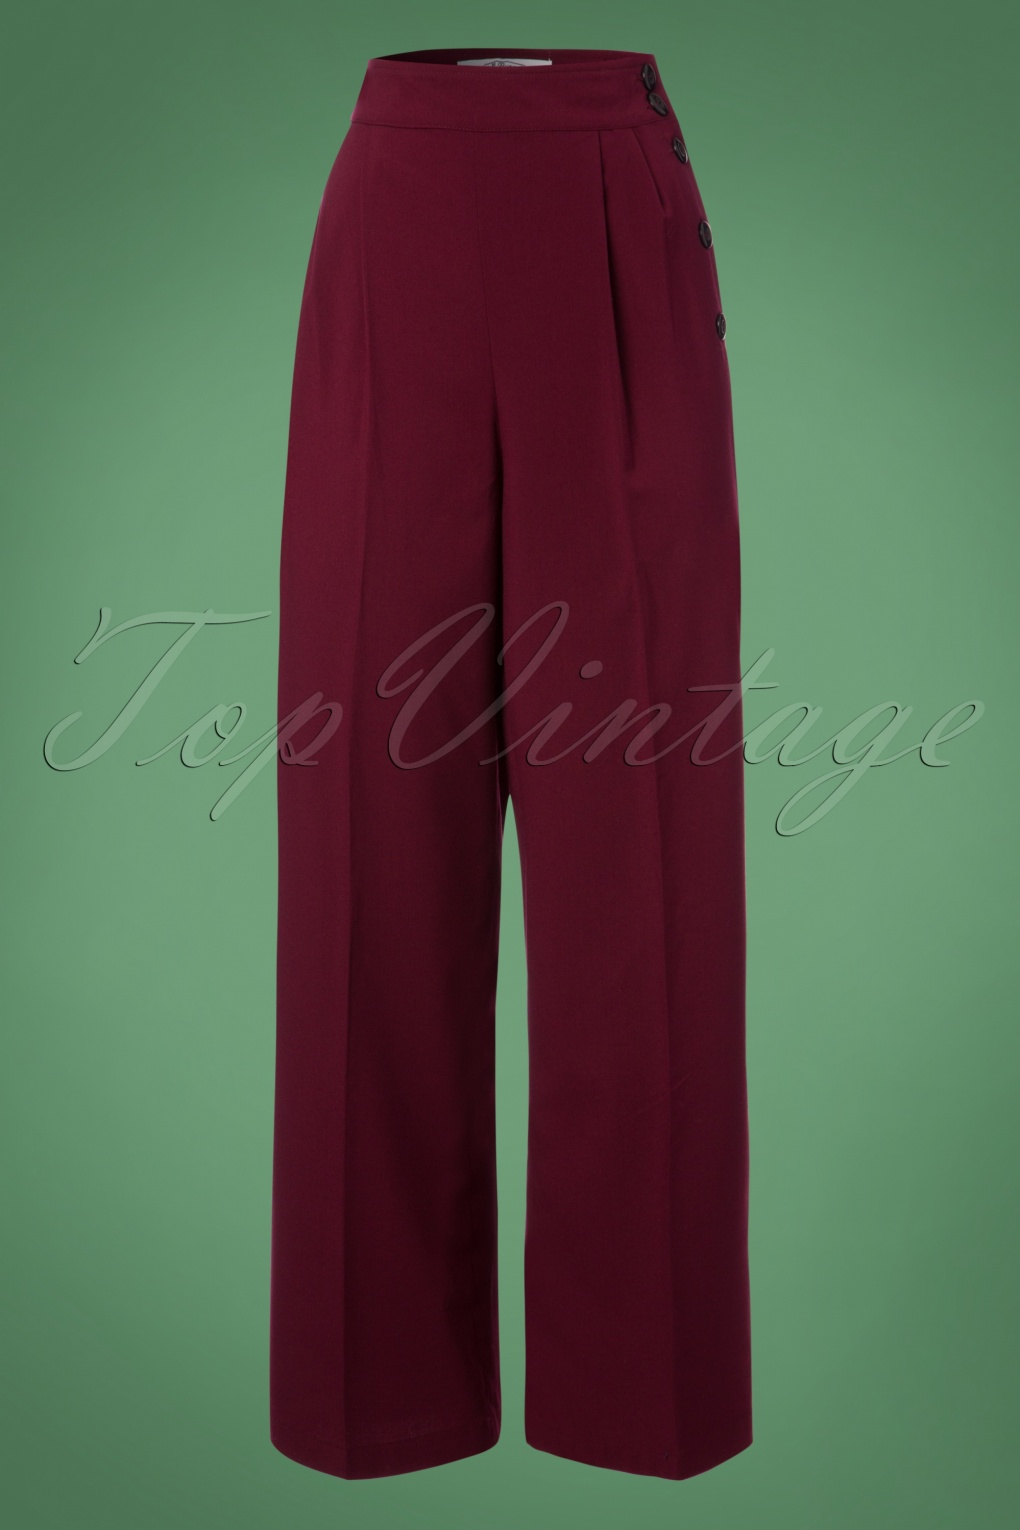 Vintage Wide Leg Pants 1920s to 1950s History 40s Hubertine Trousers in Burgundy £38.11 AT vintagedancer.com